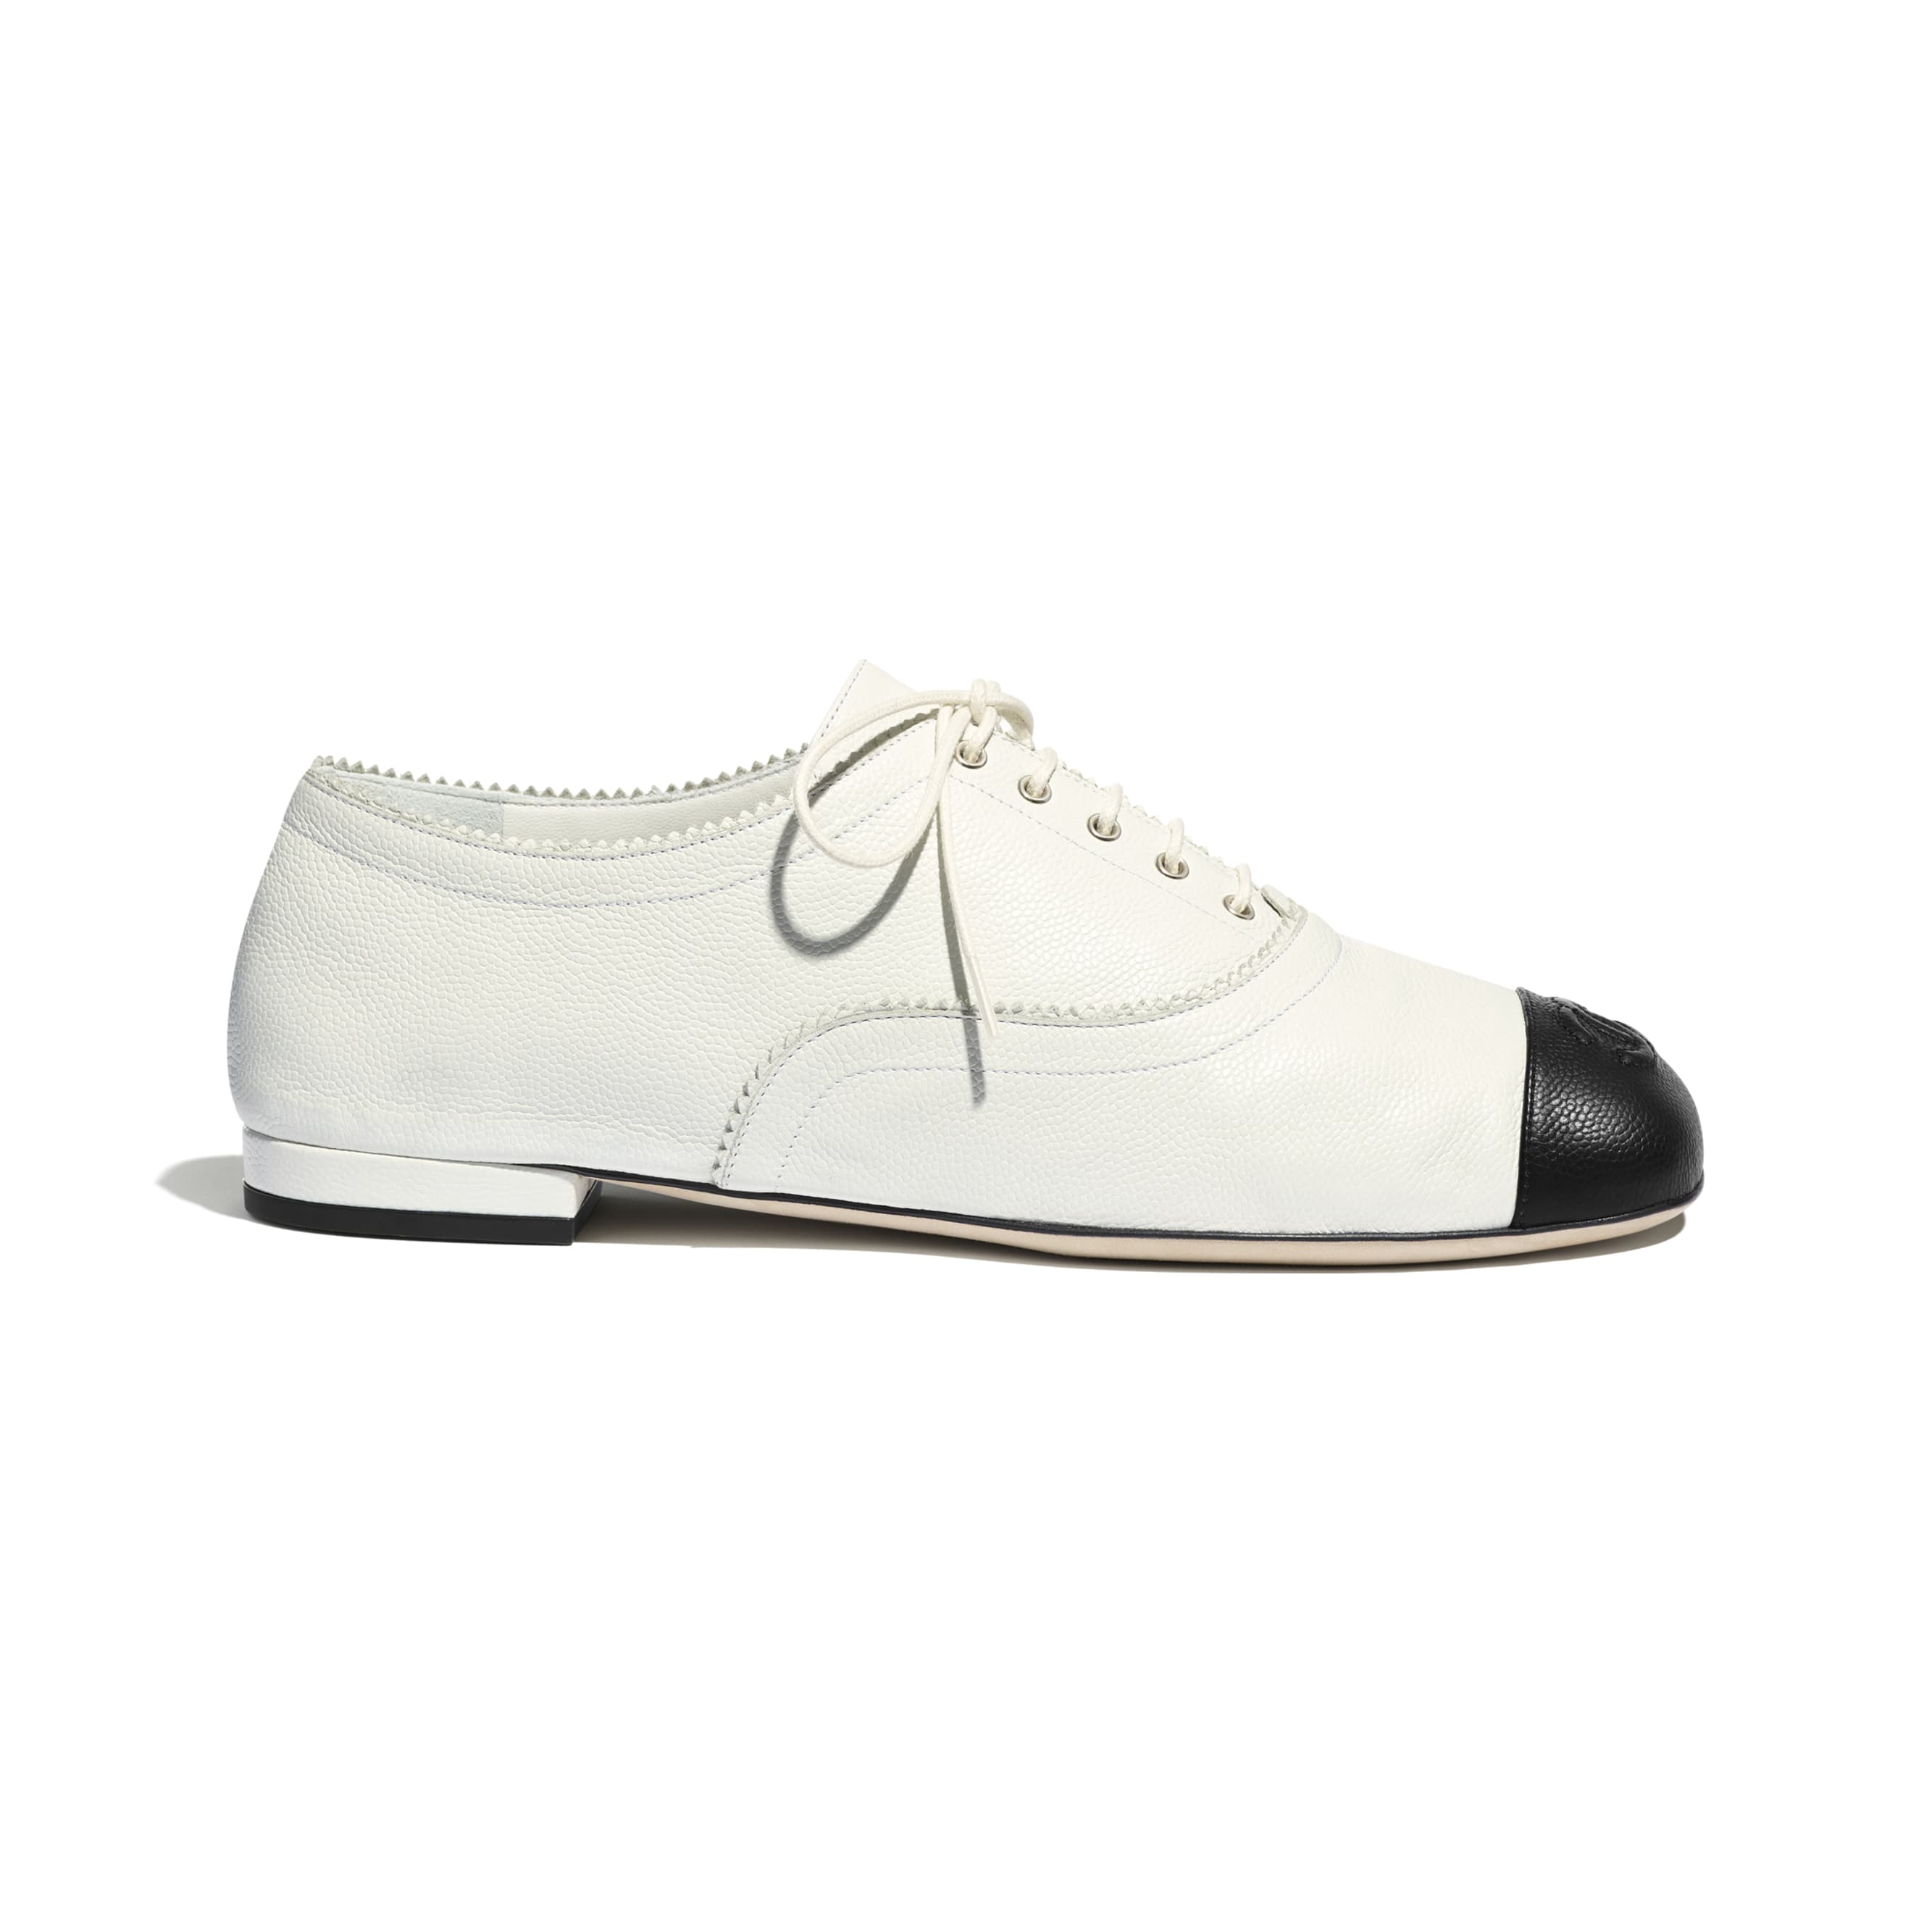 Lace Up - White & Black - Calfskin - CHANEL - Default view - see standard sized version